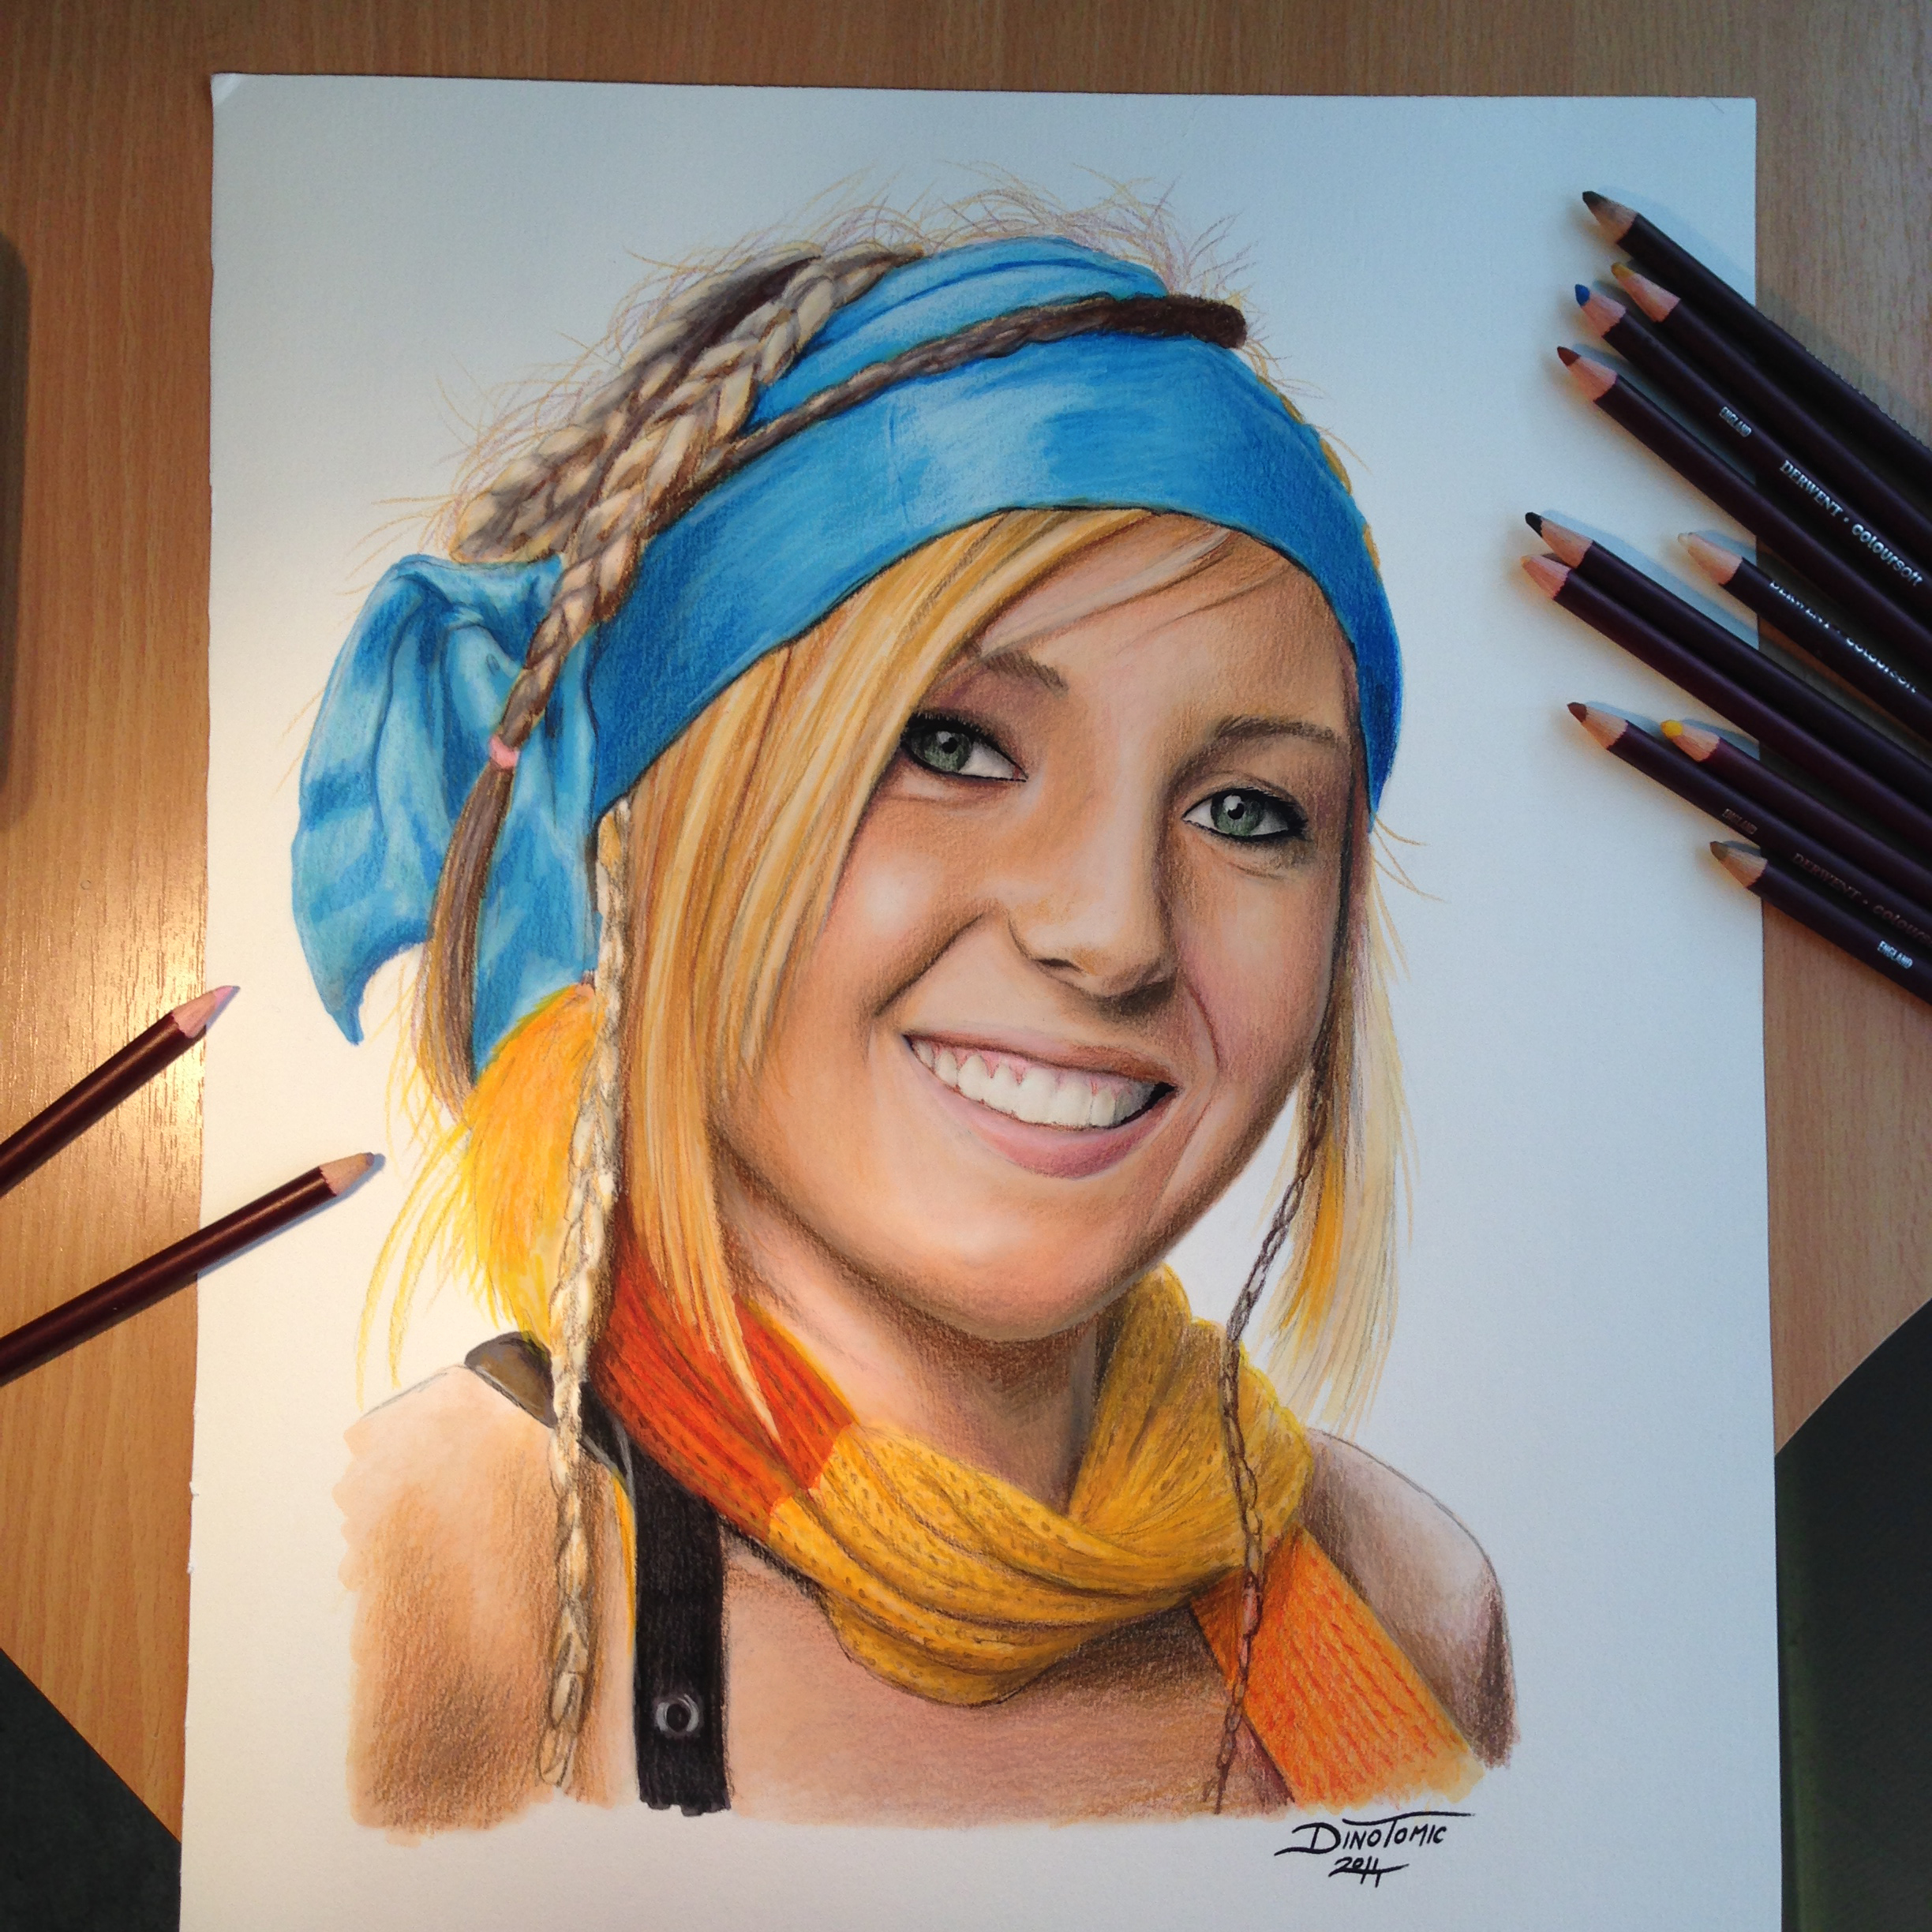 2448x2448 Color Pencil Drawing Of Jessica Nigri By Atomiccircus.